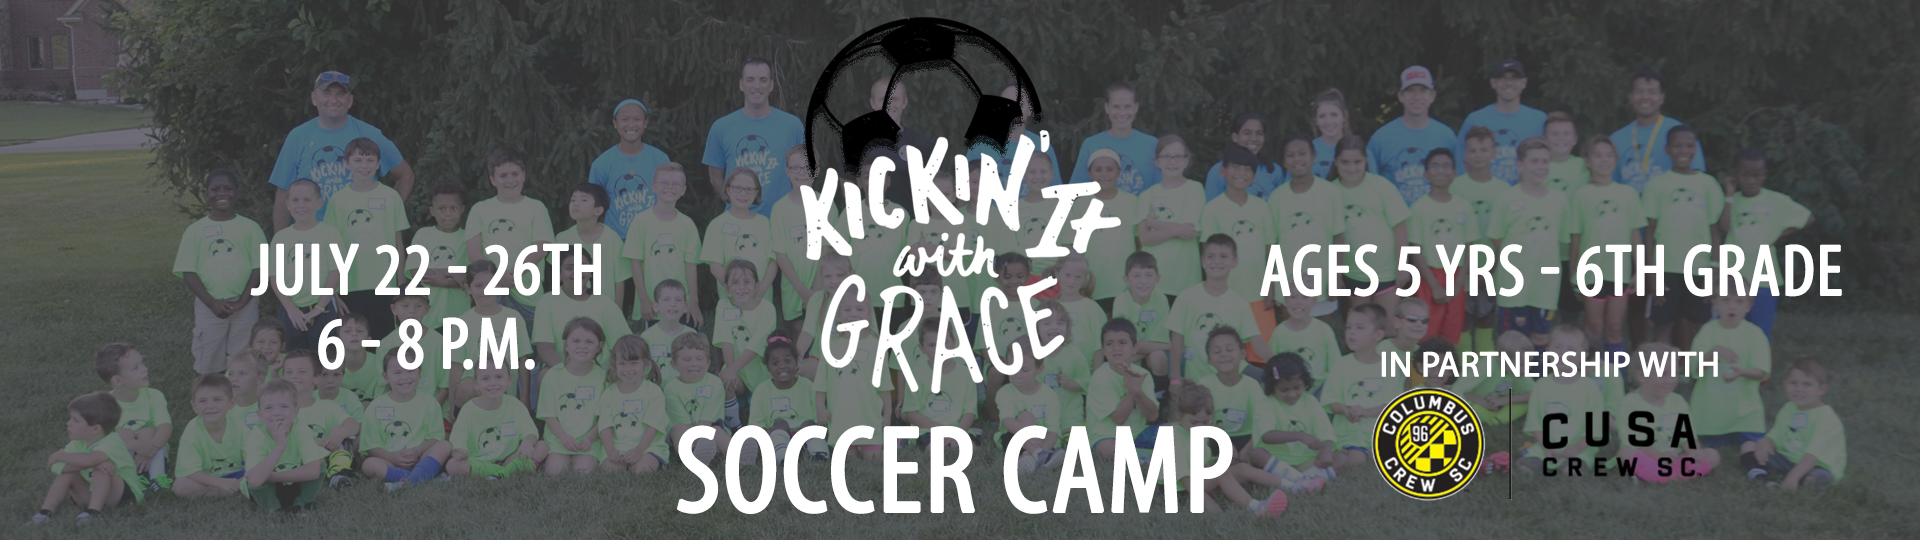 kickin it with grace web banner 2018